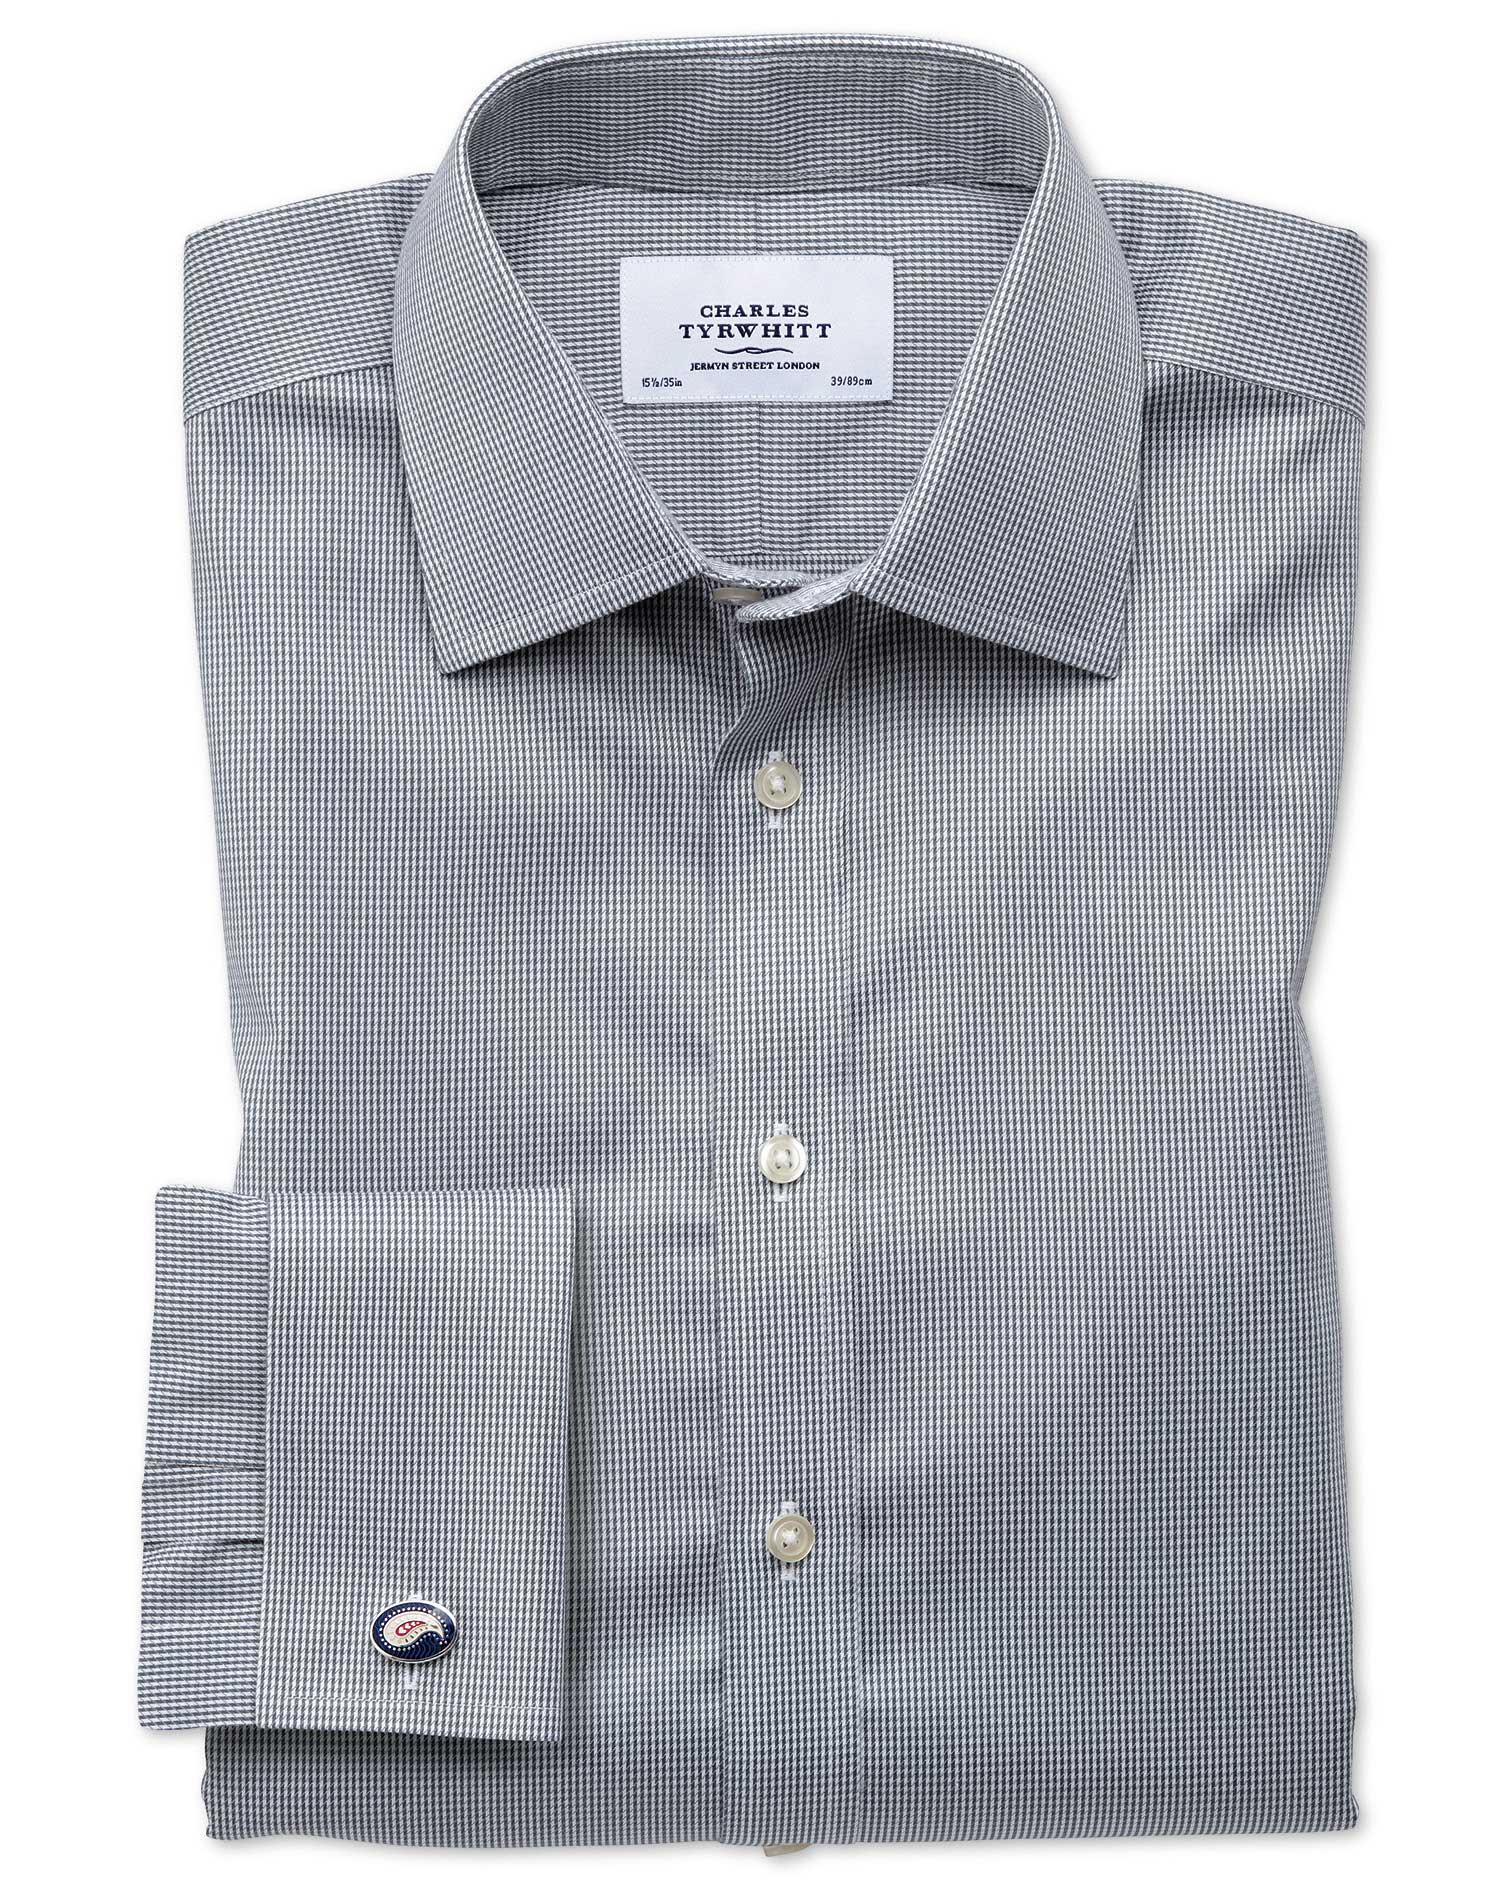 Classic Fit Non-Iron Puppytooth Dark Grey Cotton Formal Shirt Double Cuff Size 17/35 by Charles Tyrw